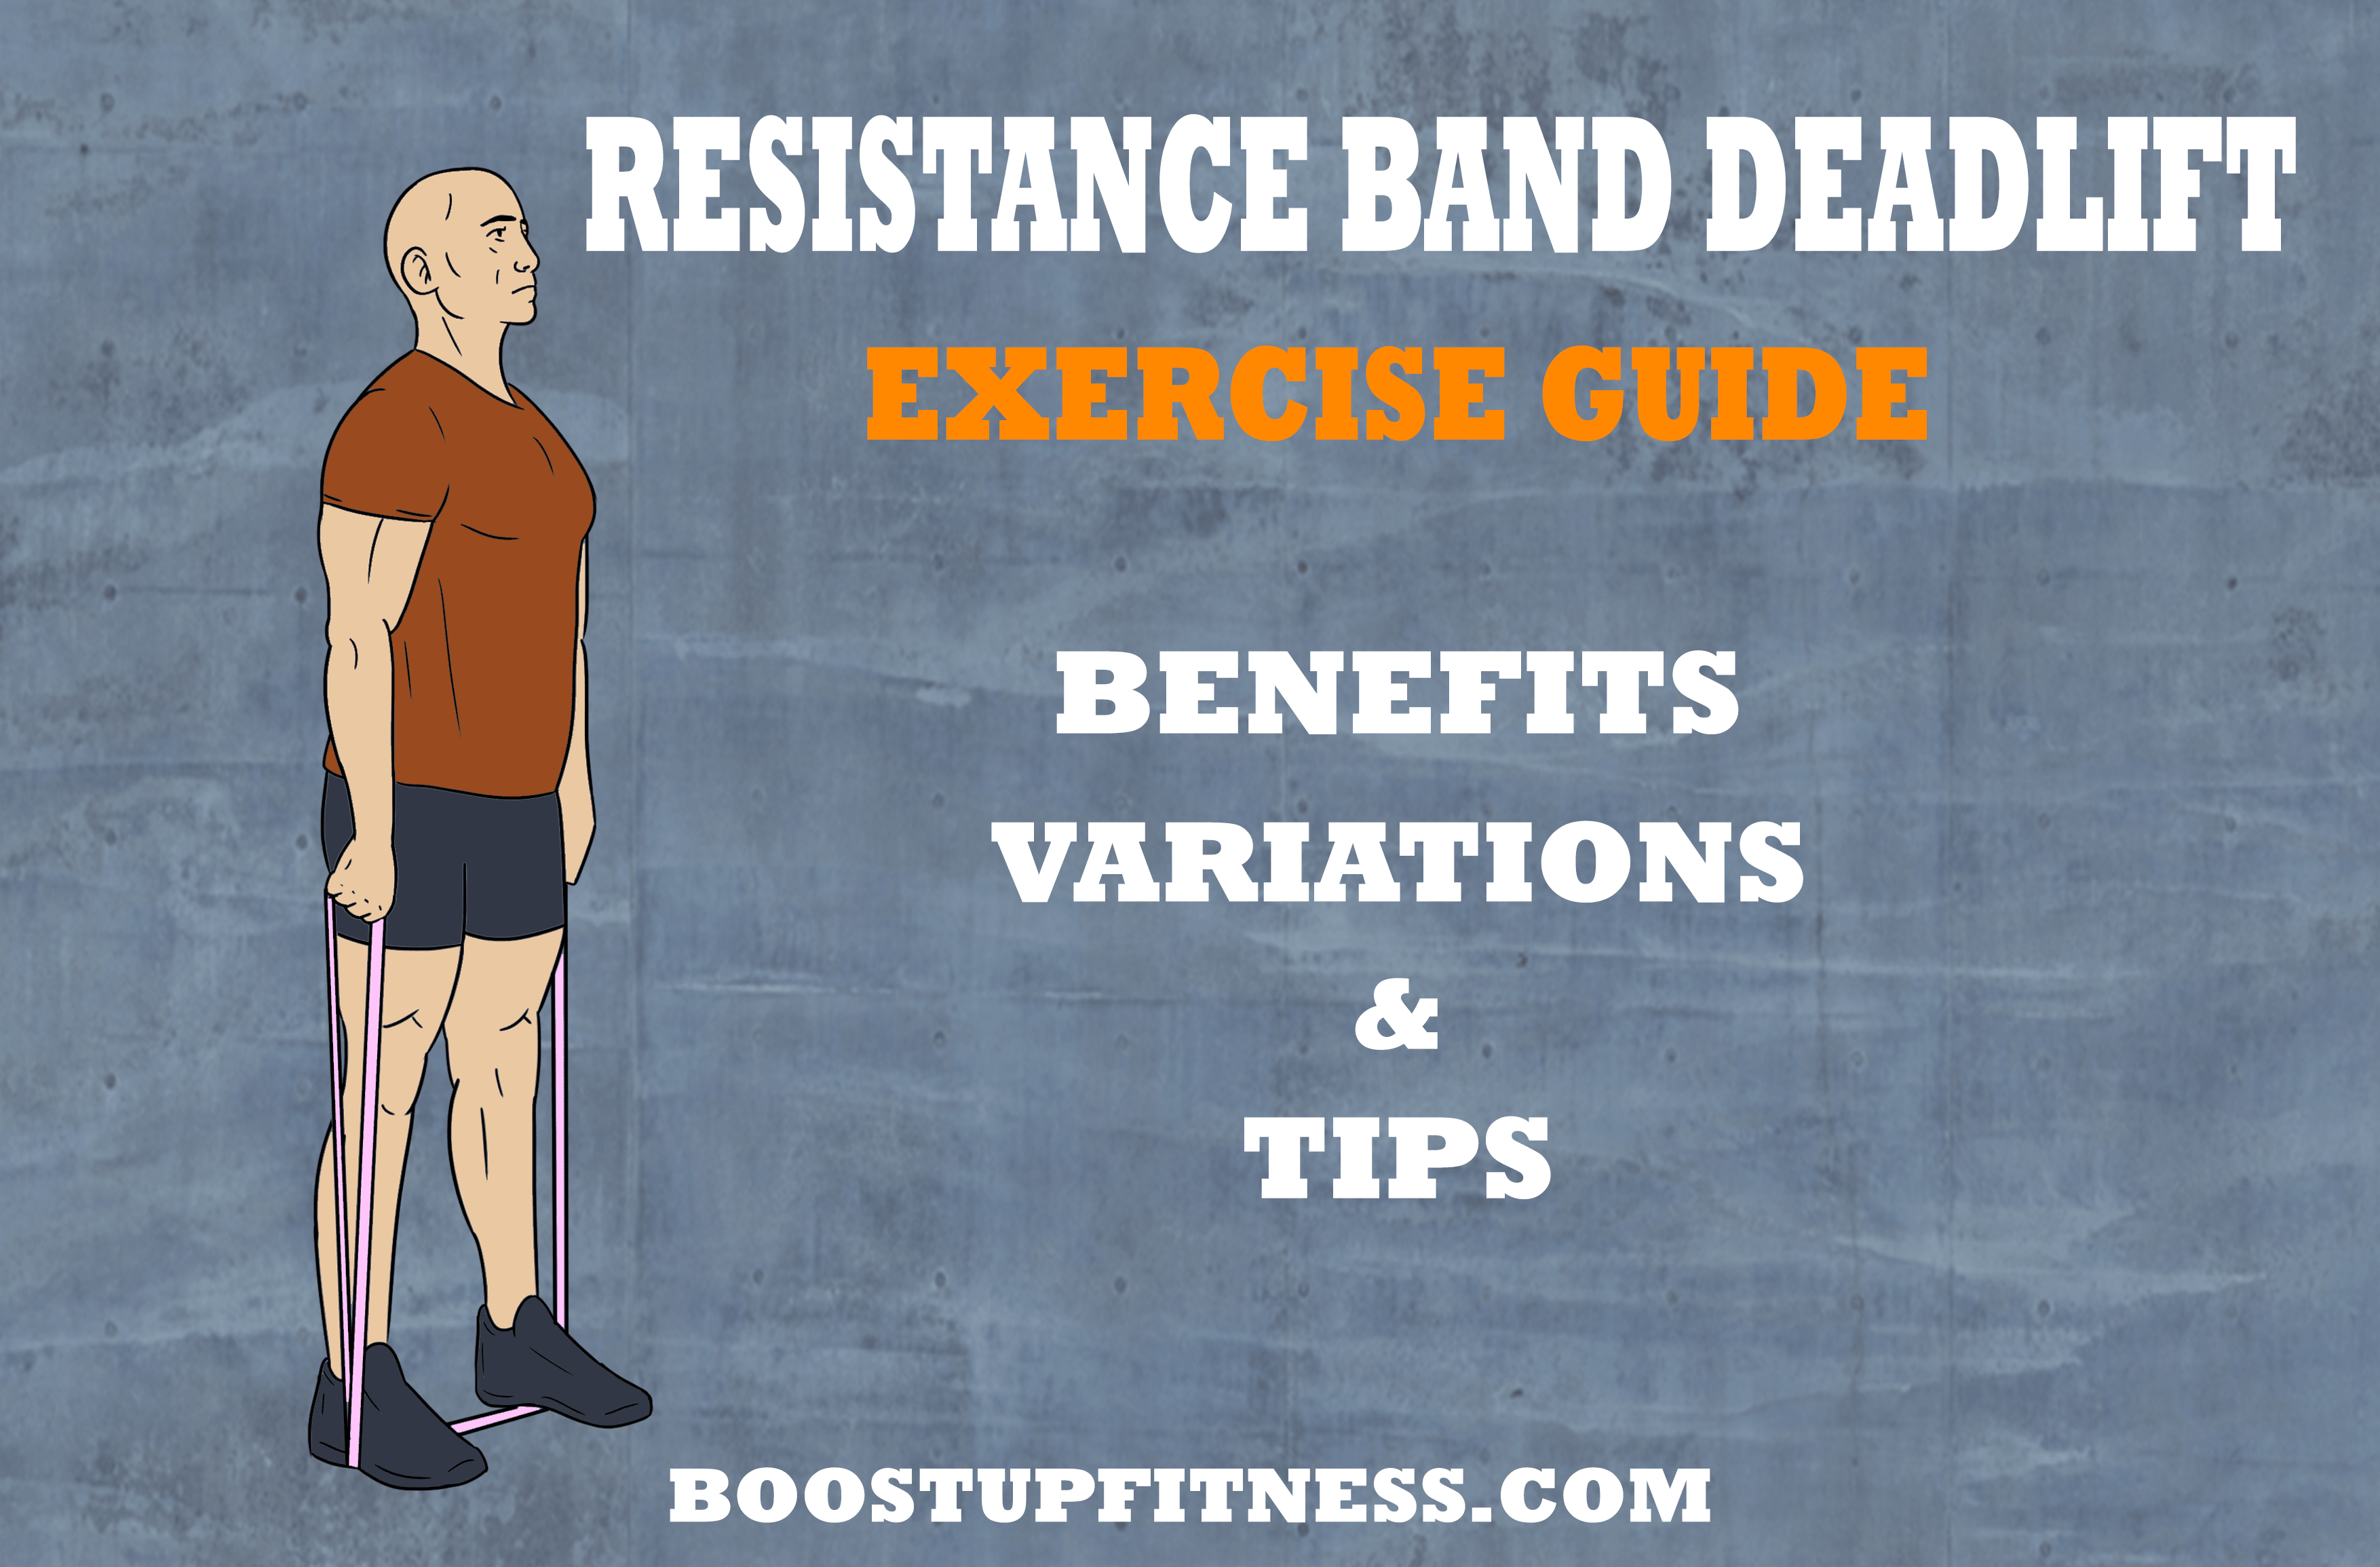 Resistance band deadlift